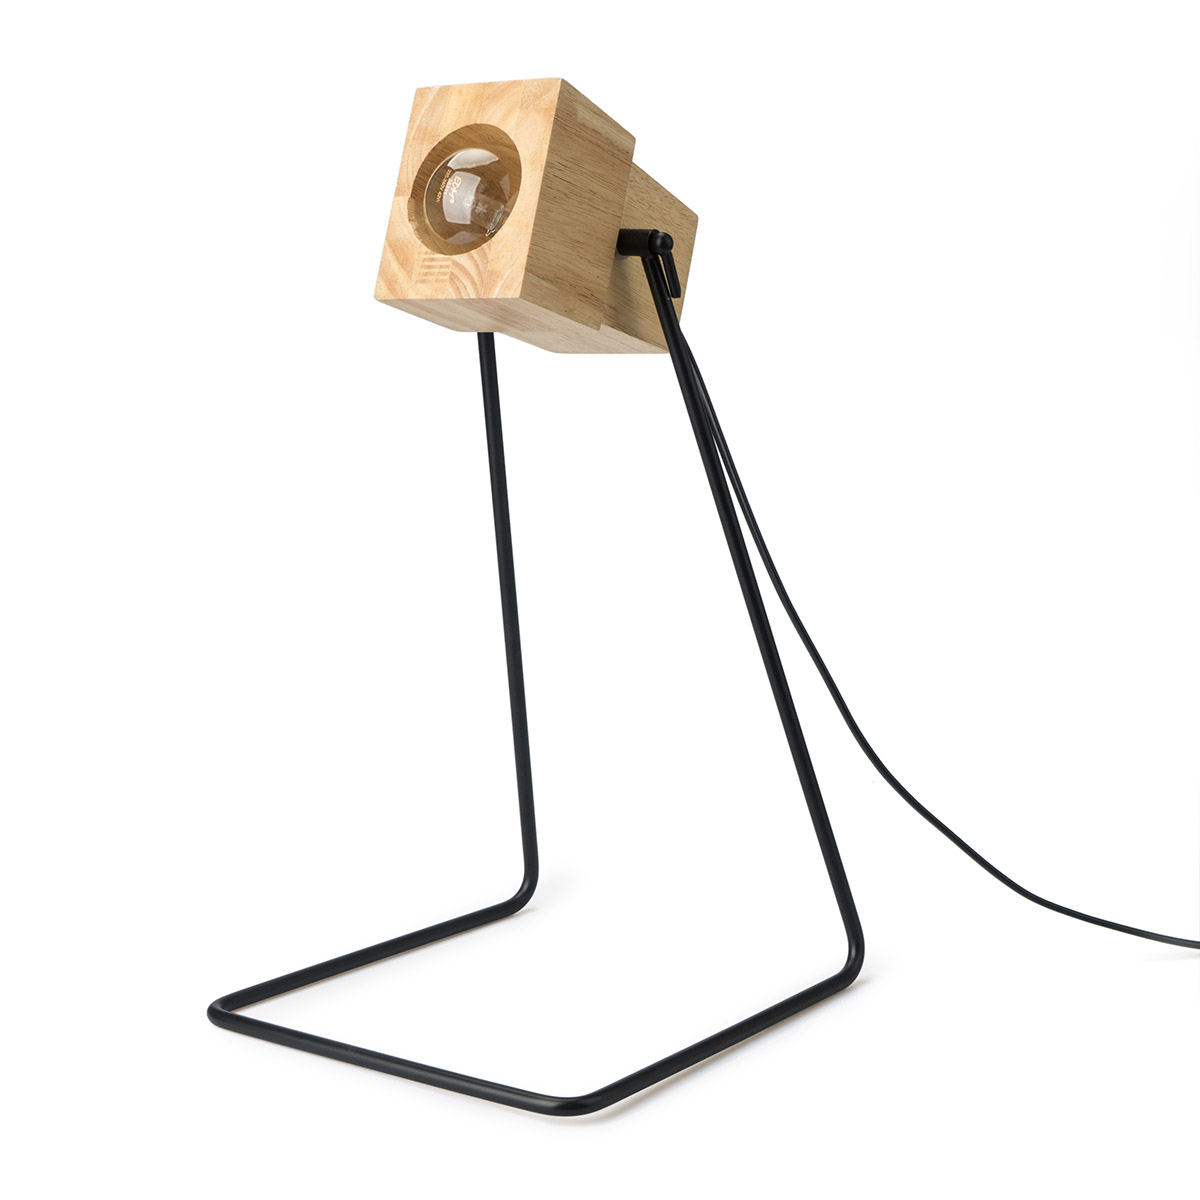 Table lamp Robot wood and metal, color Natural and black, industrial style, 40x23x24 cm